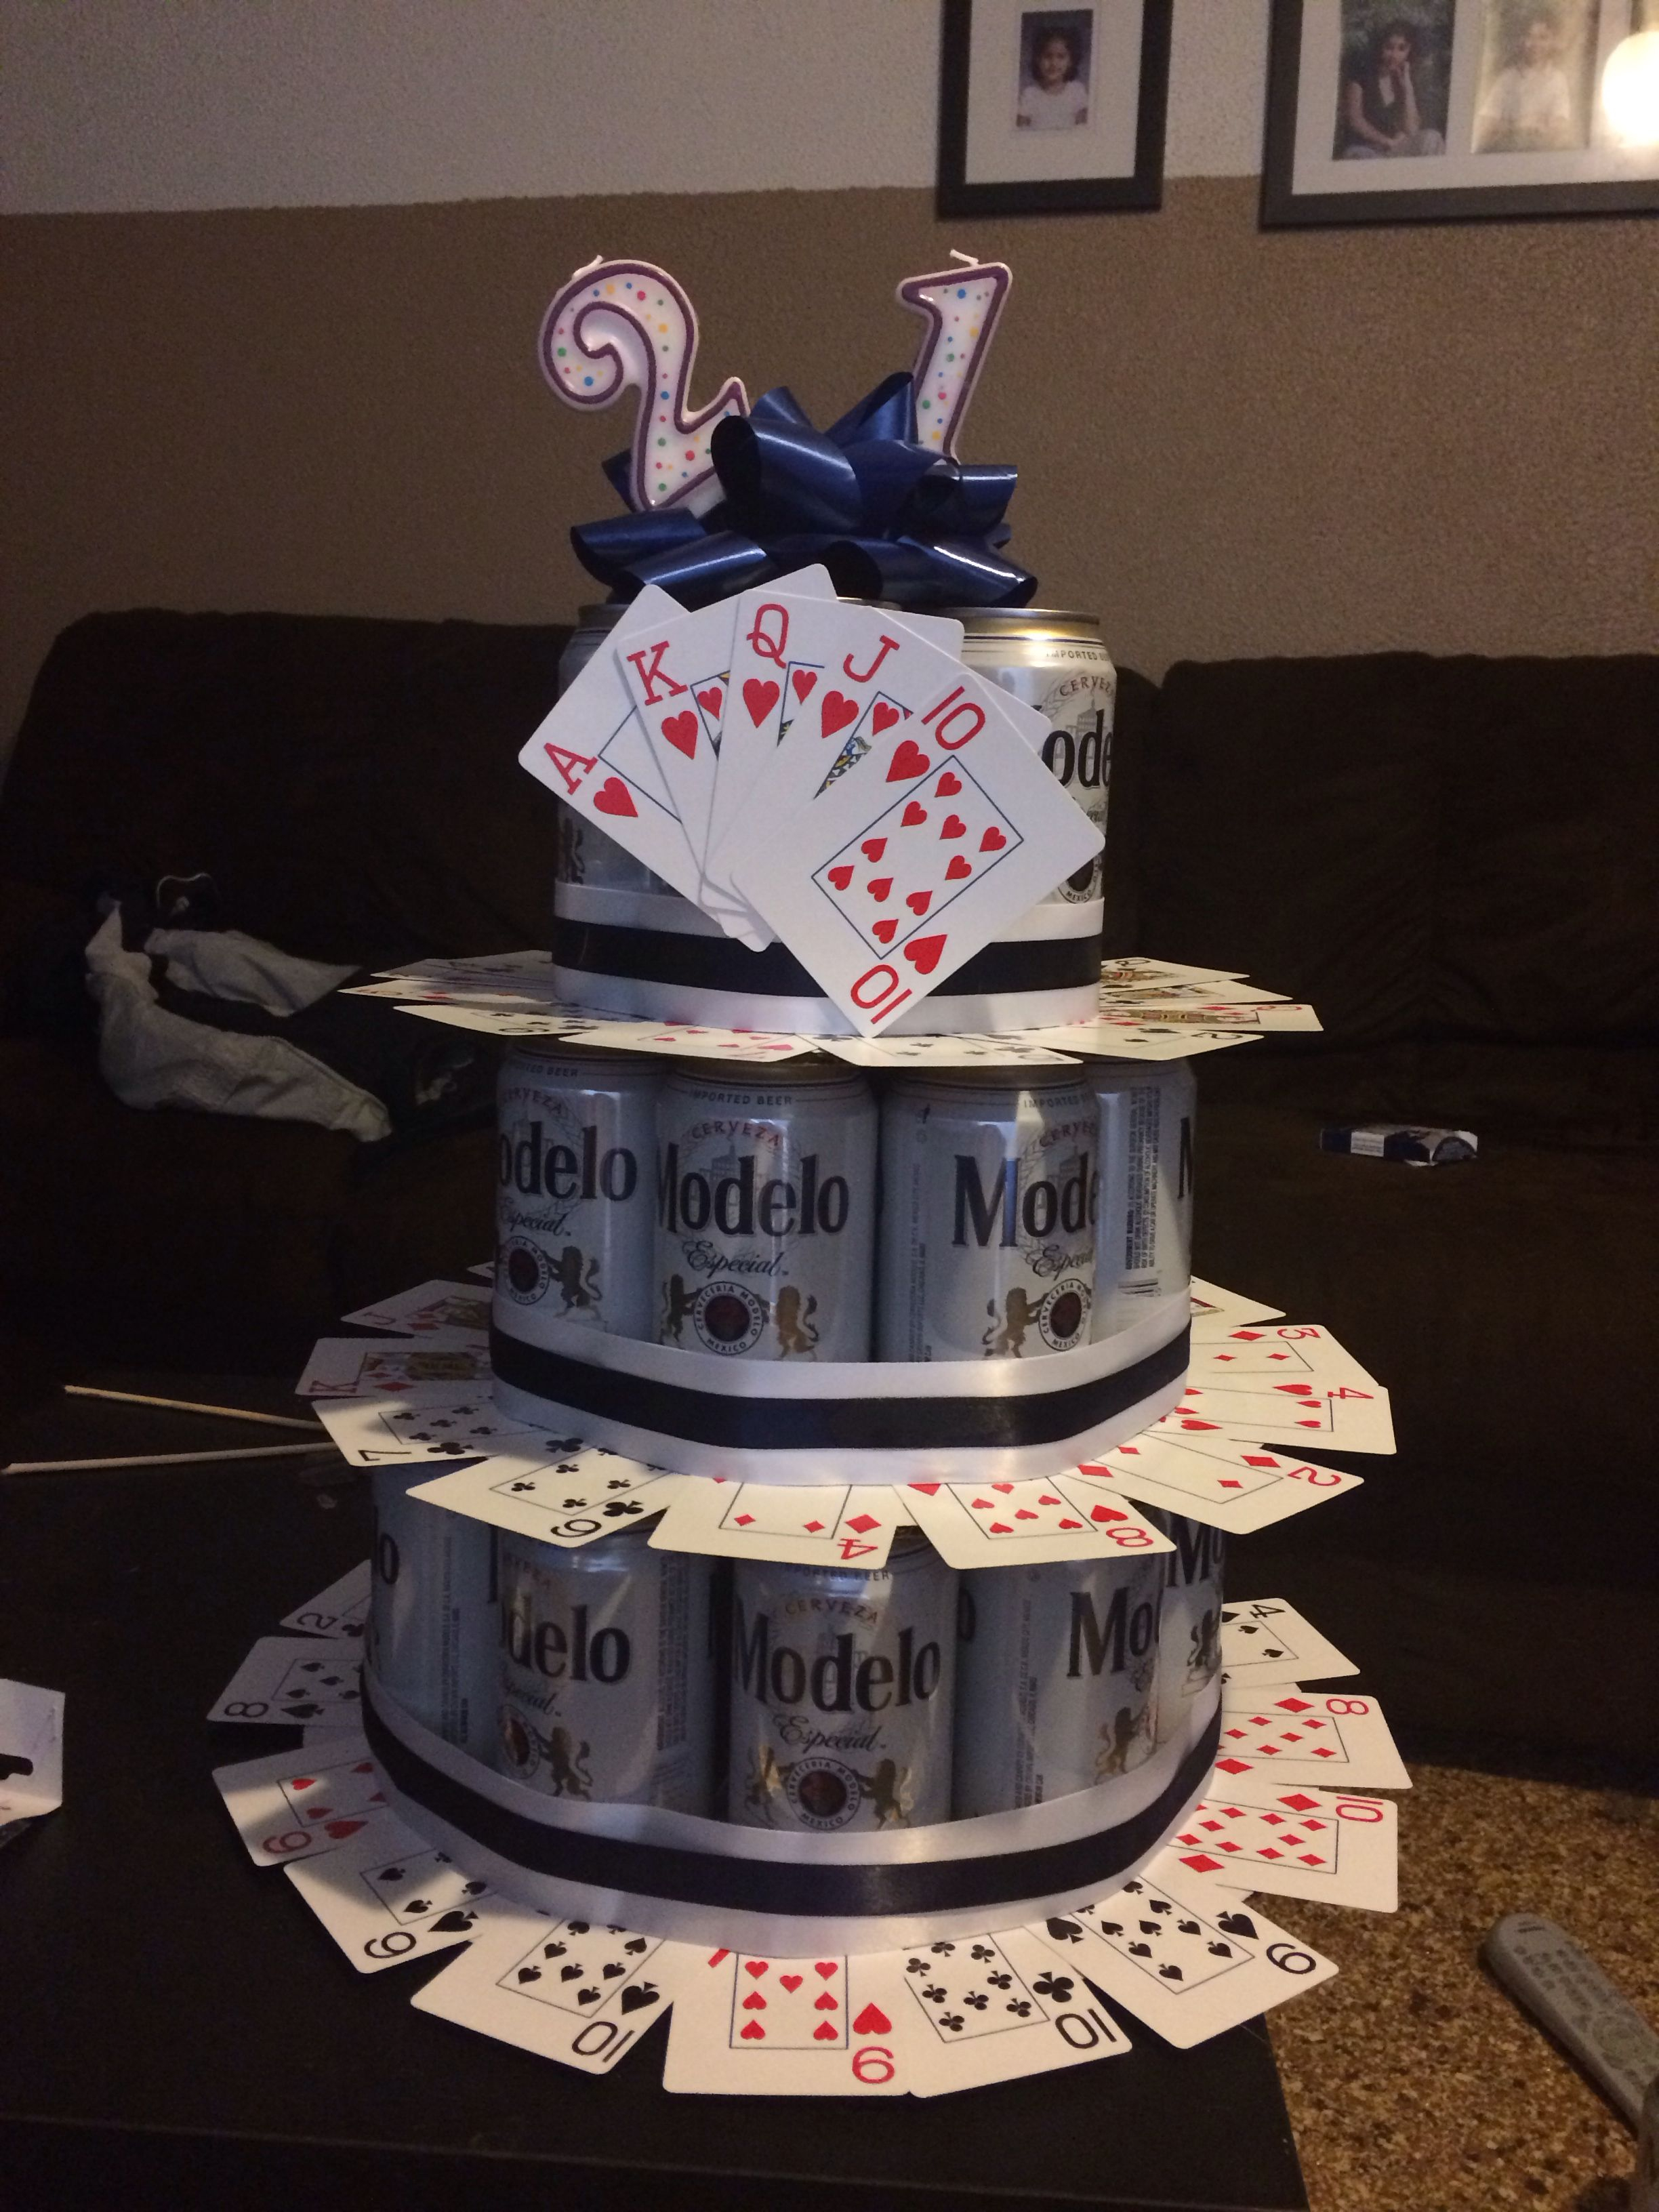 21St Birthday Cakes For Guys Fun 21st Beer Cake Idea A Guy Diy